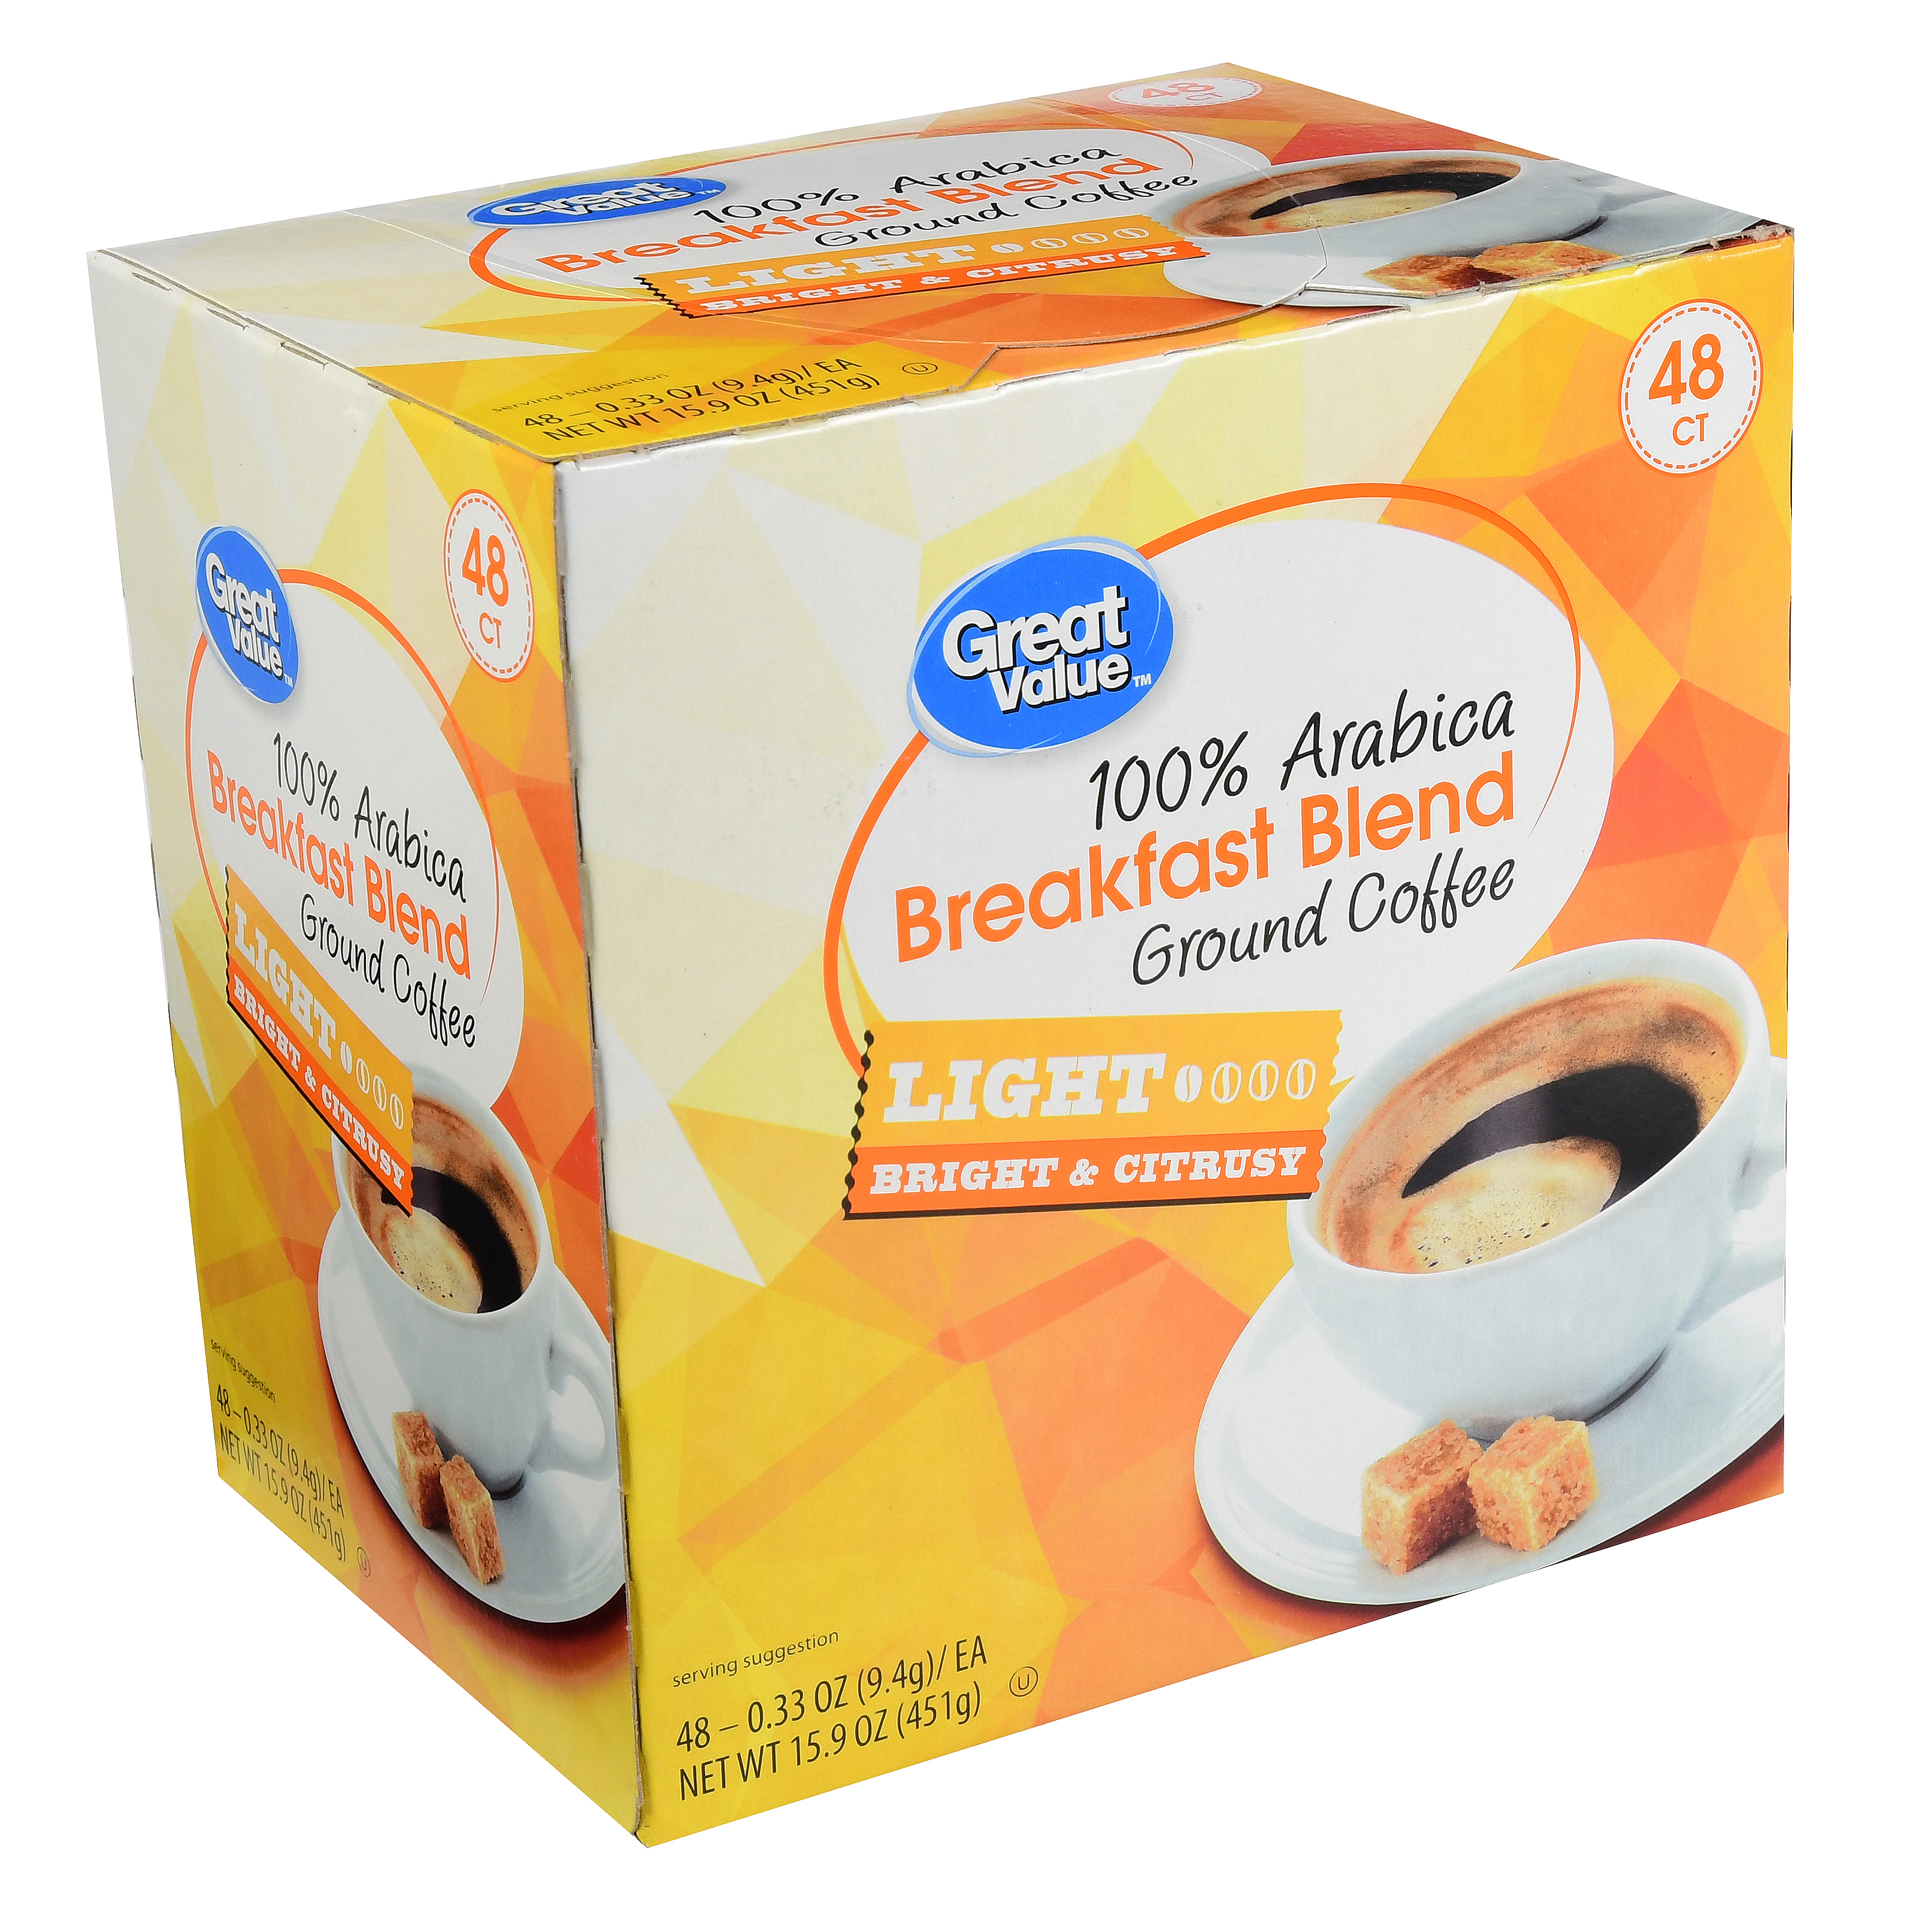 Great Value Breakfast Blend Ground Coffee Single Serve Cups, Medium Roast, 48 Count